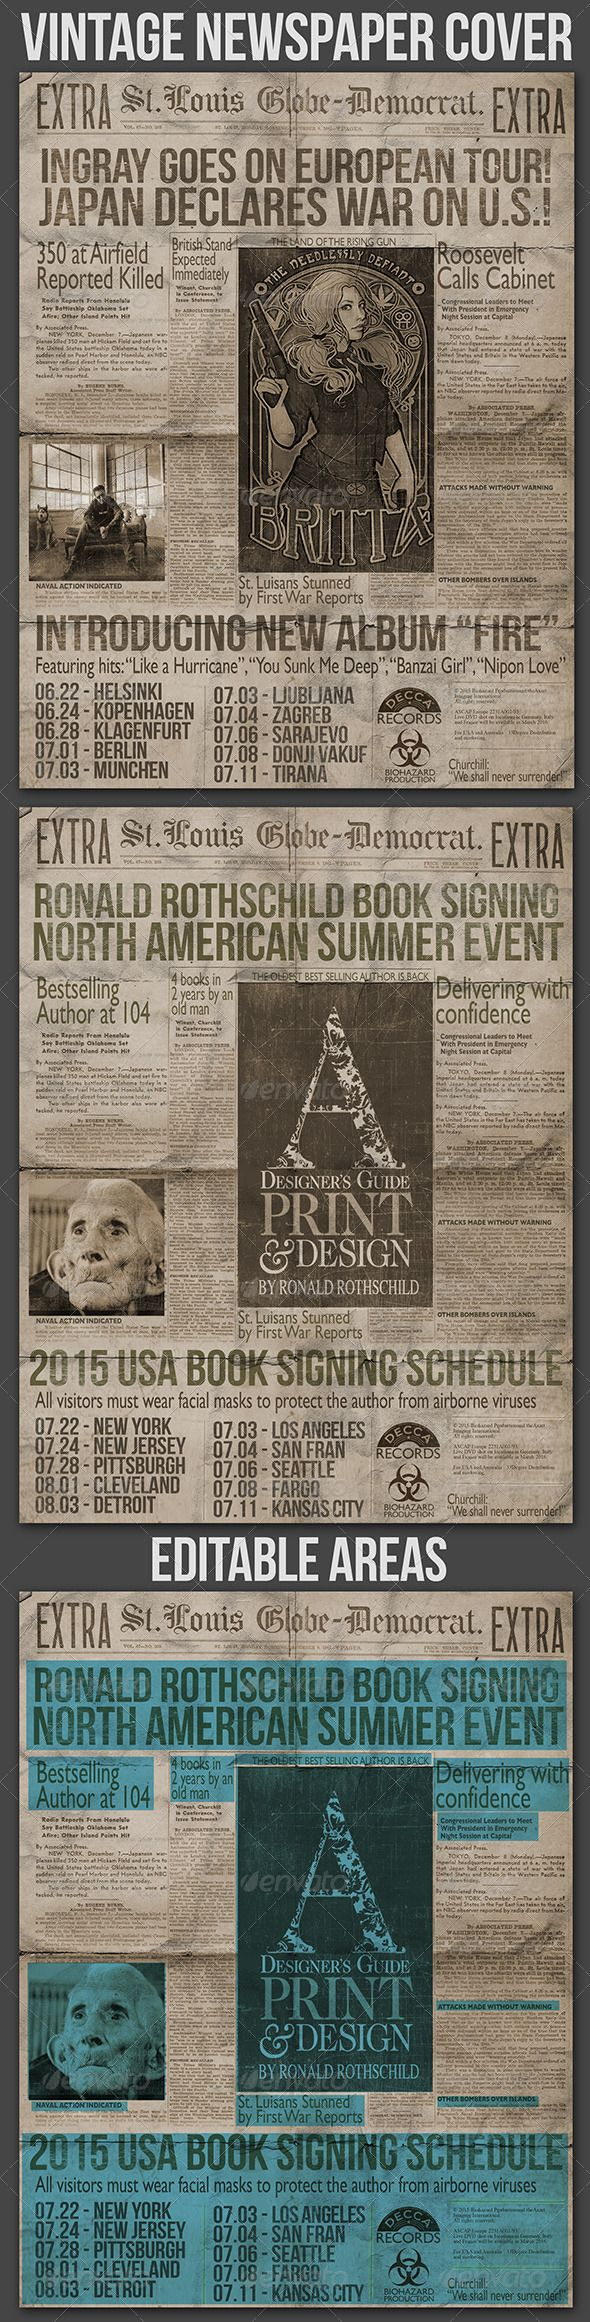 Vintage Newspaper Cover — Photoshop PSD #book signing #tour poster • Available here → https://graphicriver.net/item/vintage-newspaper-cover/6594552?ref=pxcr